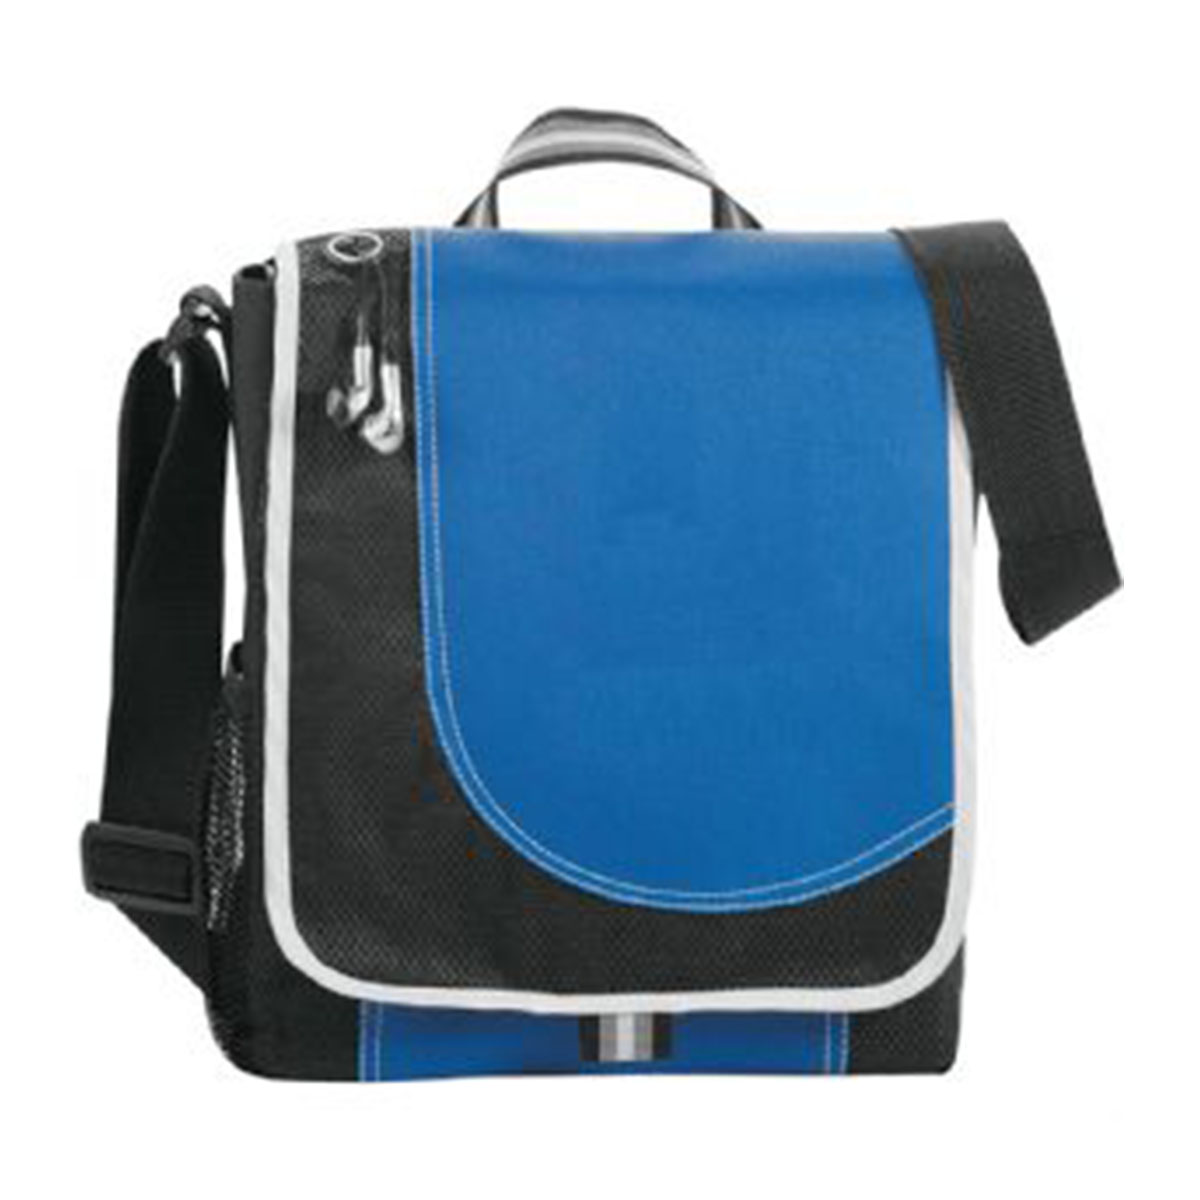 Boomerang Messenger Bag-Blue and Black with White Trim.